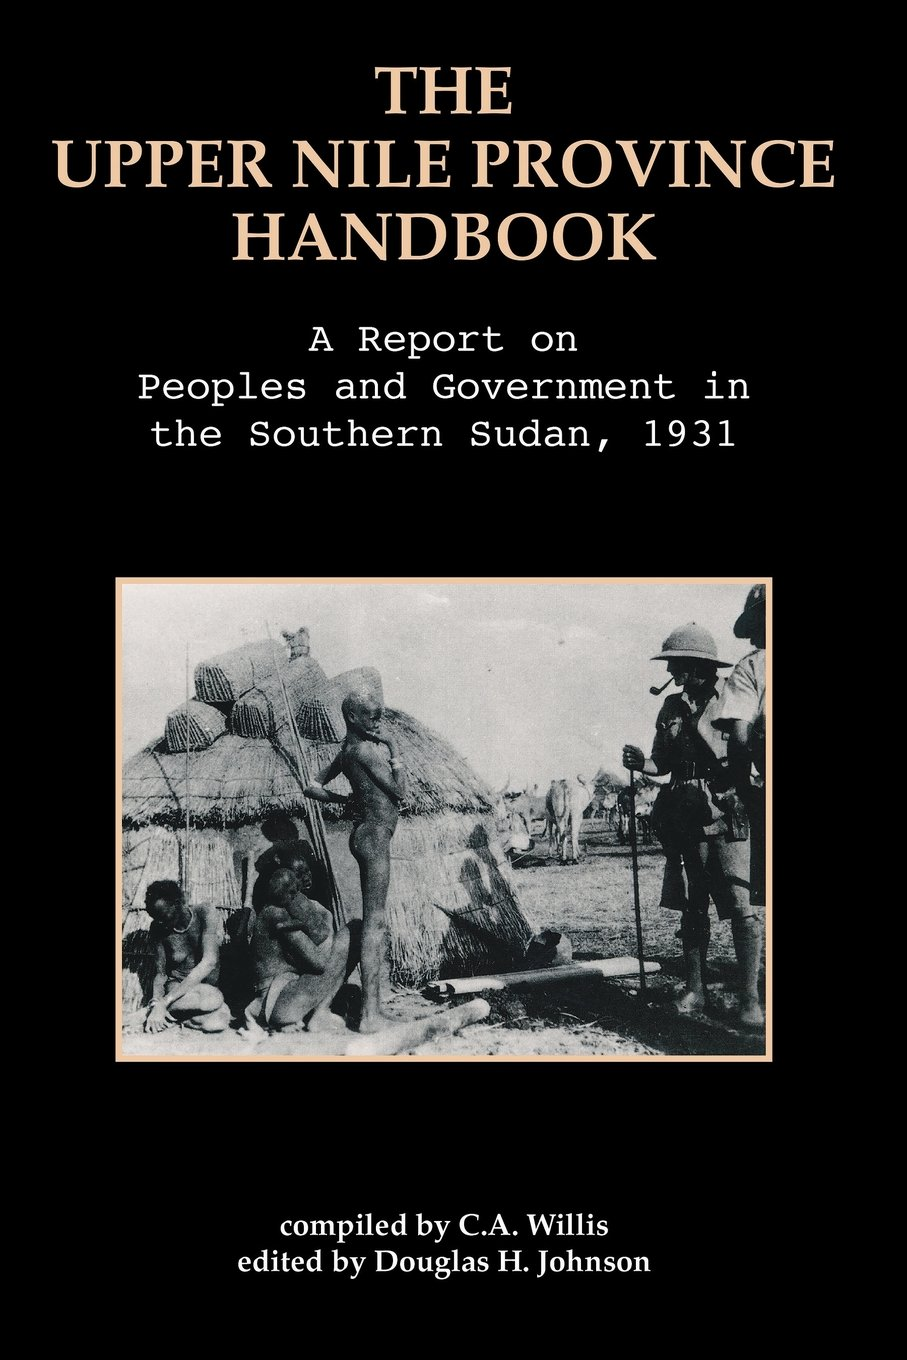 The Upper Nile Province Handbook: A Report on People and Government in the Southern Sudan, 1991